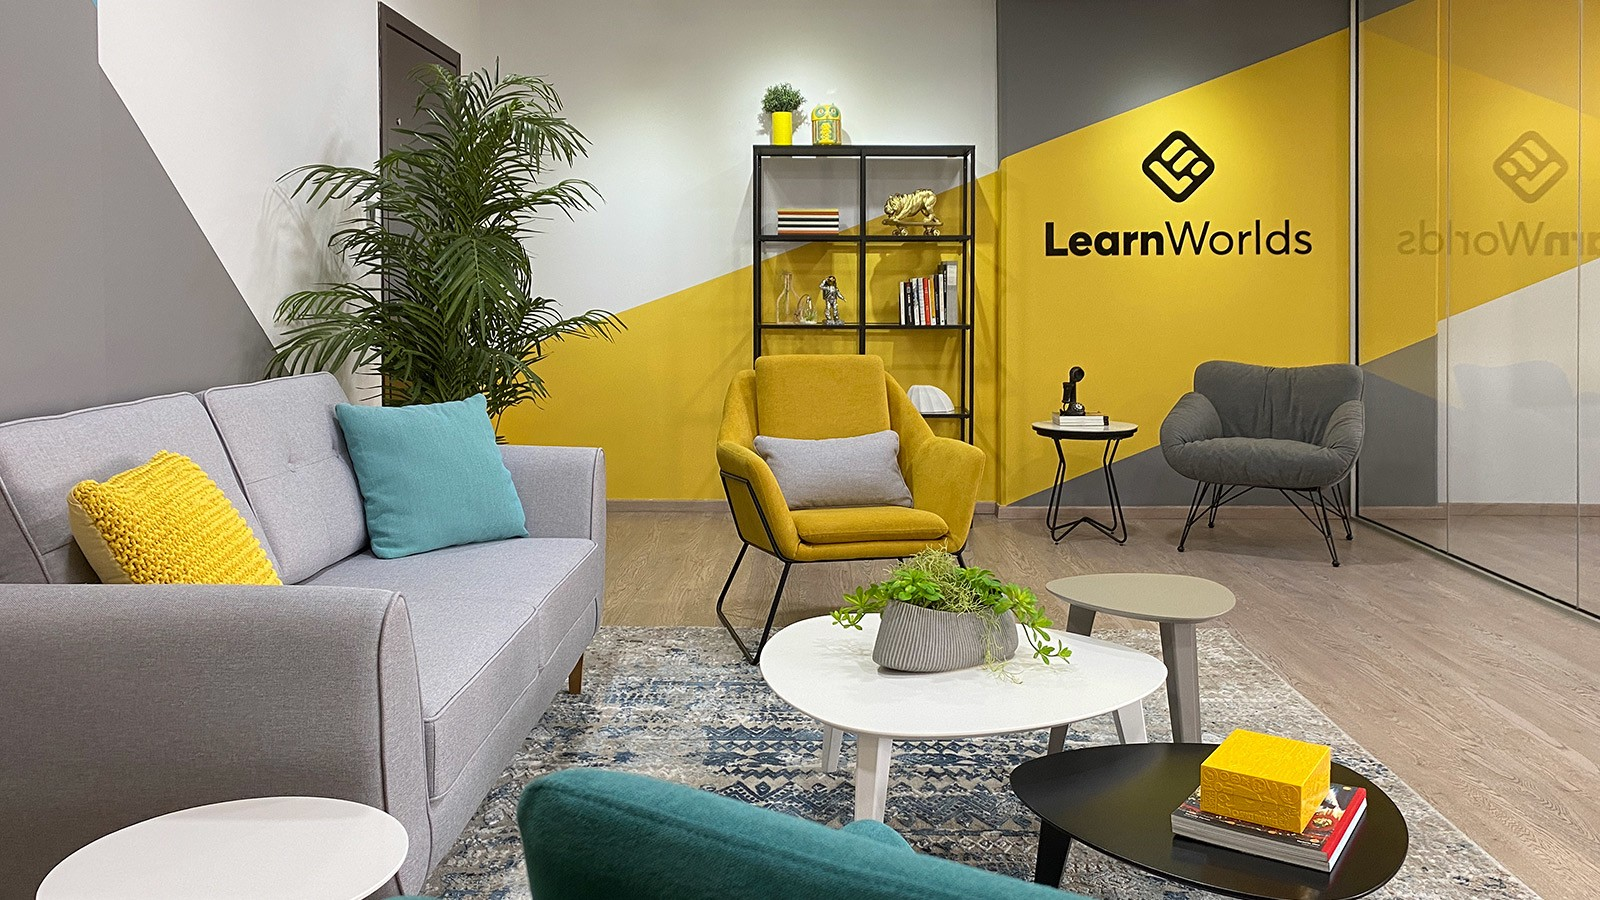 A fresh, hip and youthful design with modern furniture and a diagonally painted accent wall for Learnworlds tech office.